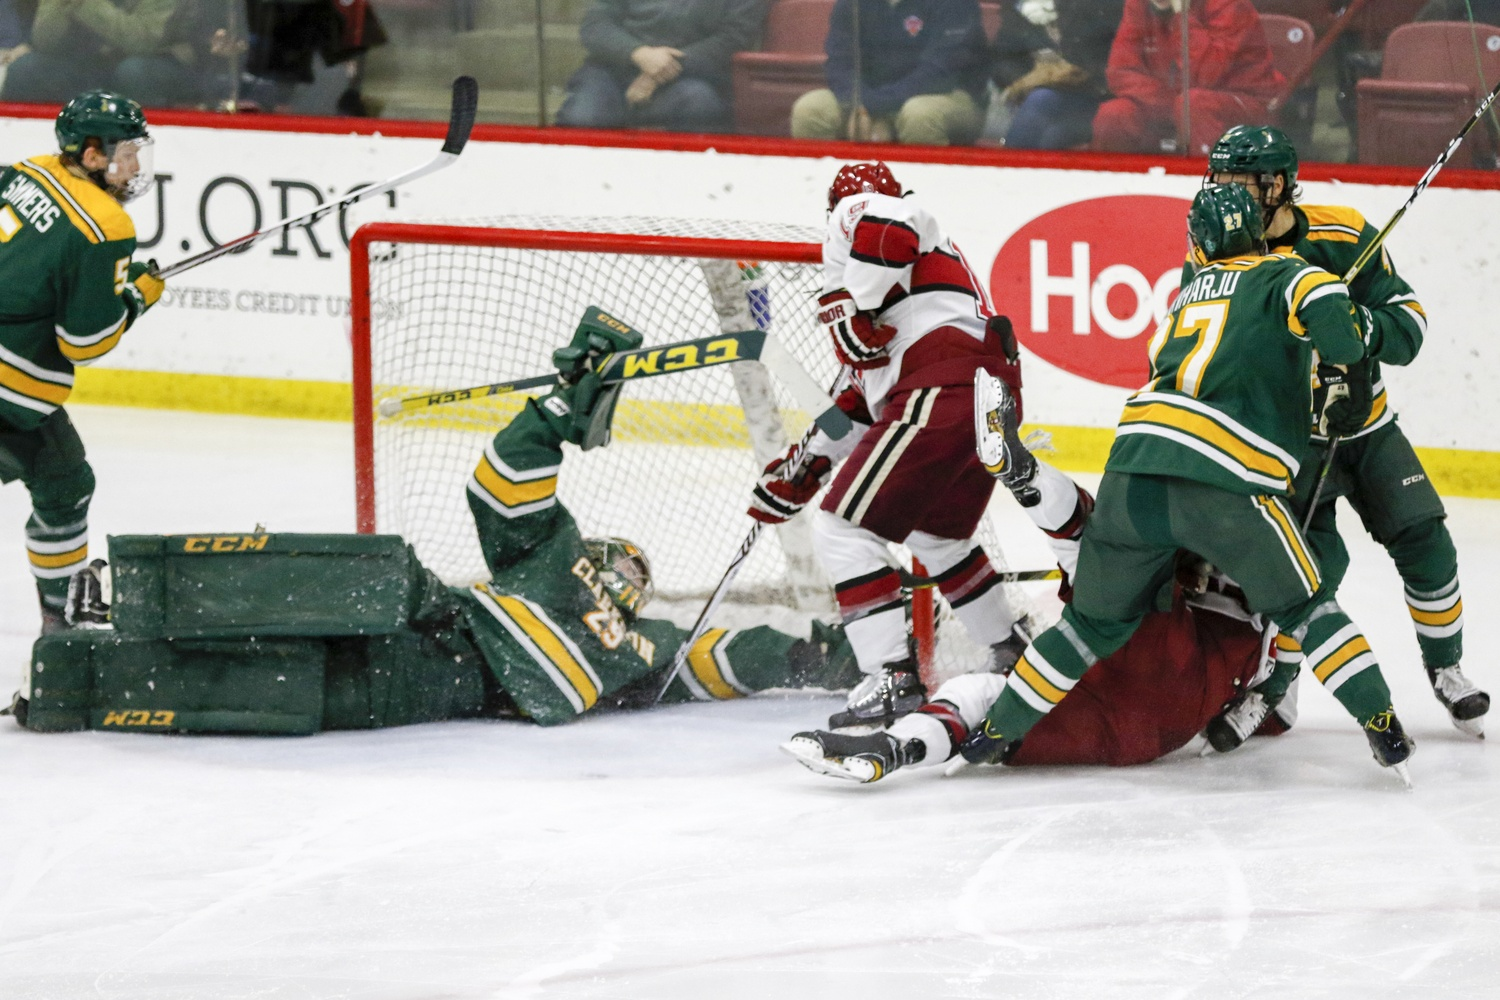 Jake Kielly conceded 12 goals to the Crimson in three matchups this year, but came away with the win that mattered as Clarkson moved on to the ECAC final.